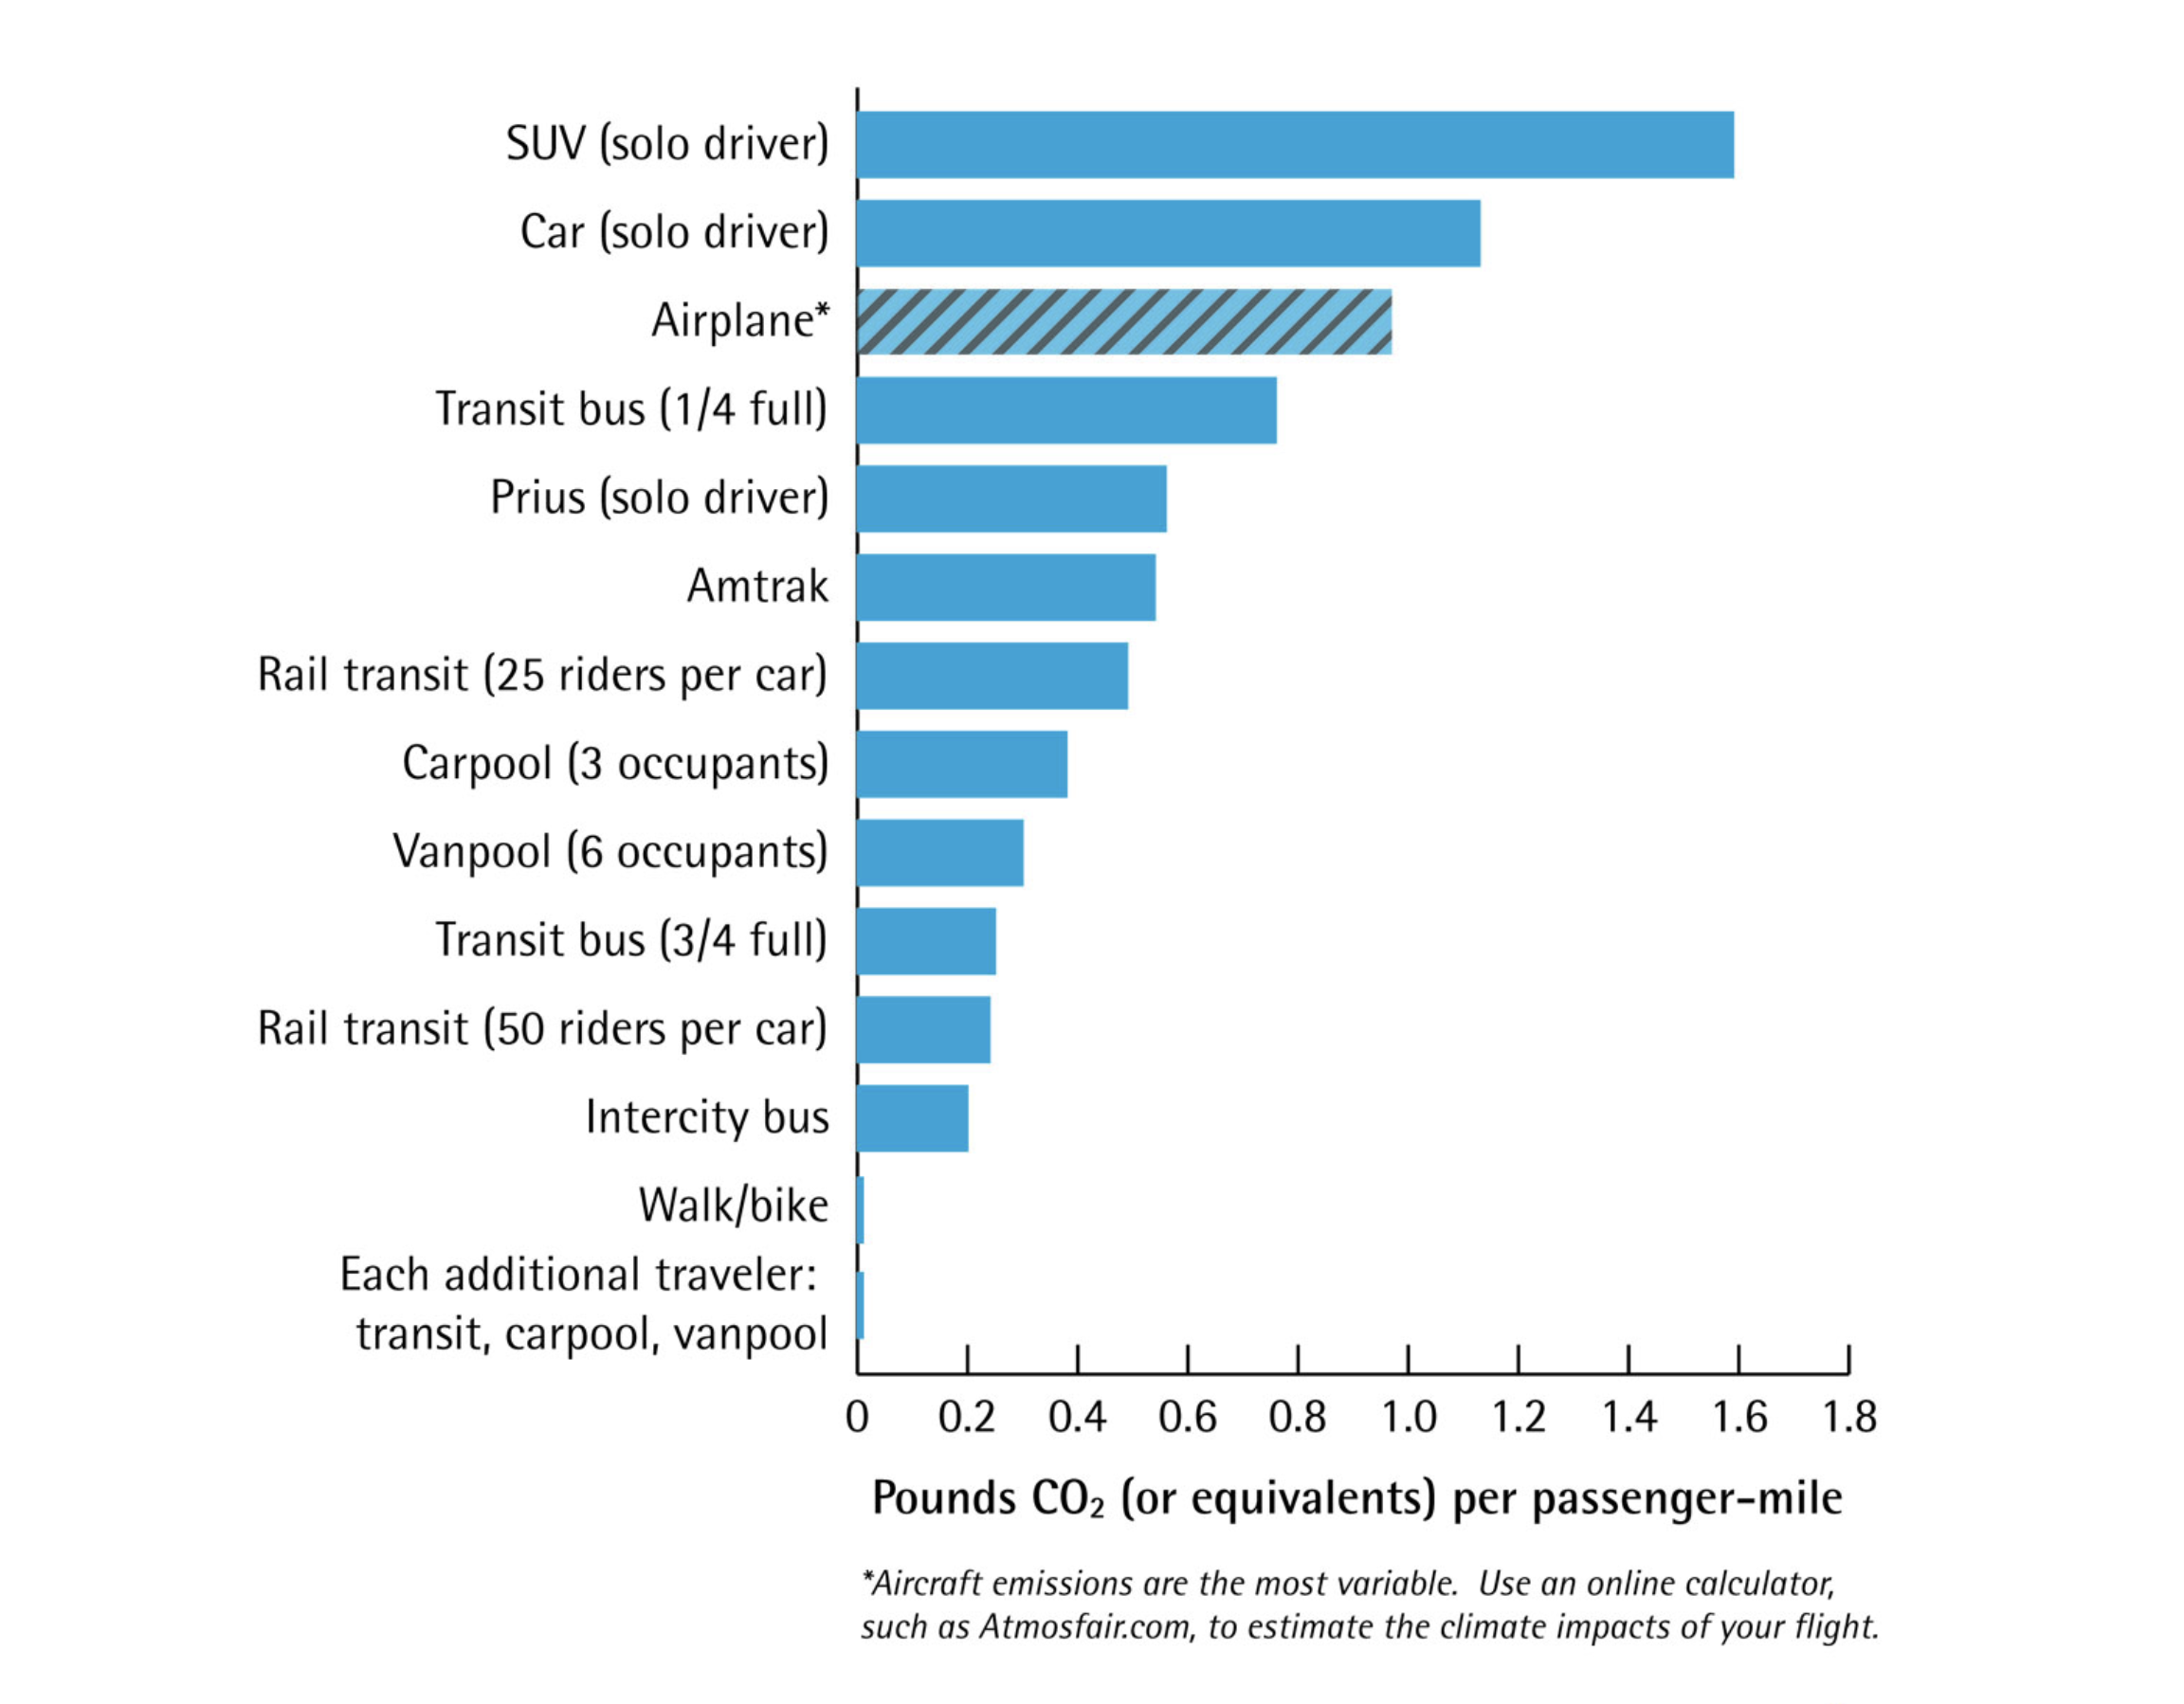 The relative carbon footprints of the most common modes of transport